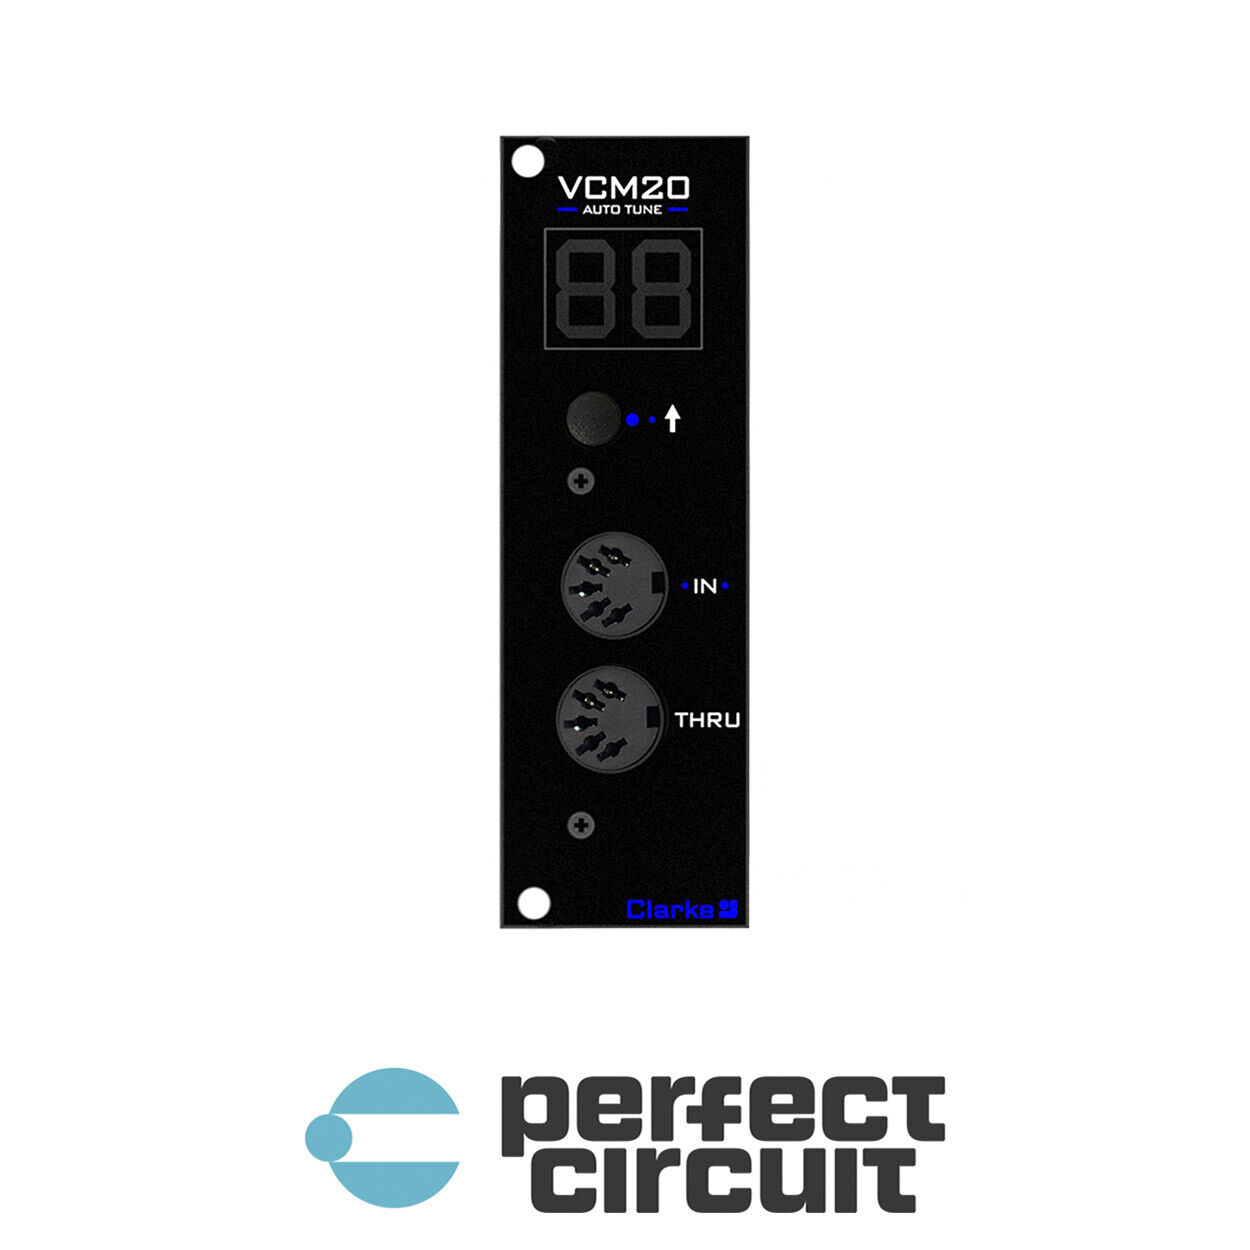 Clarke Circuits VCM20 MIDI-CV Calibration EURORACK - NEW - PERFECT CIRCUIT